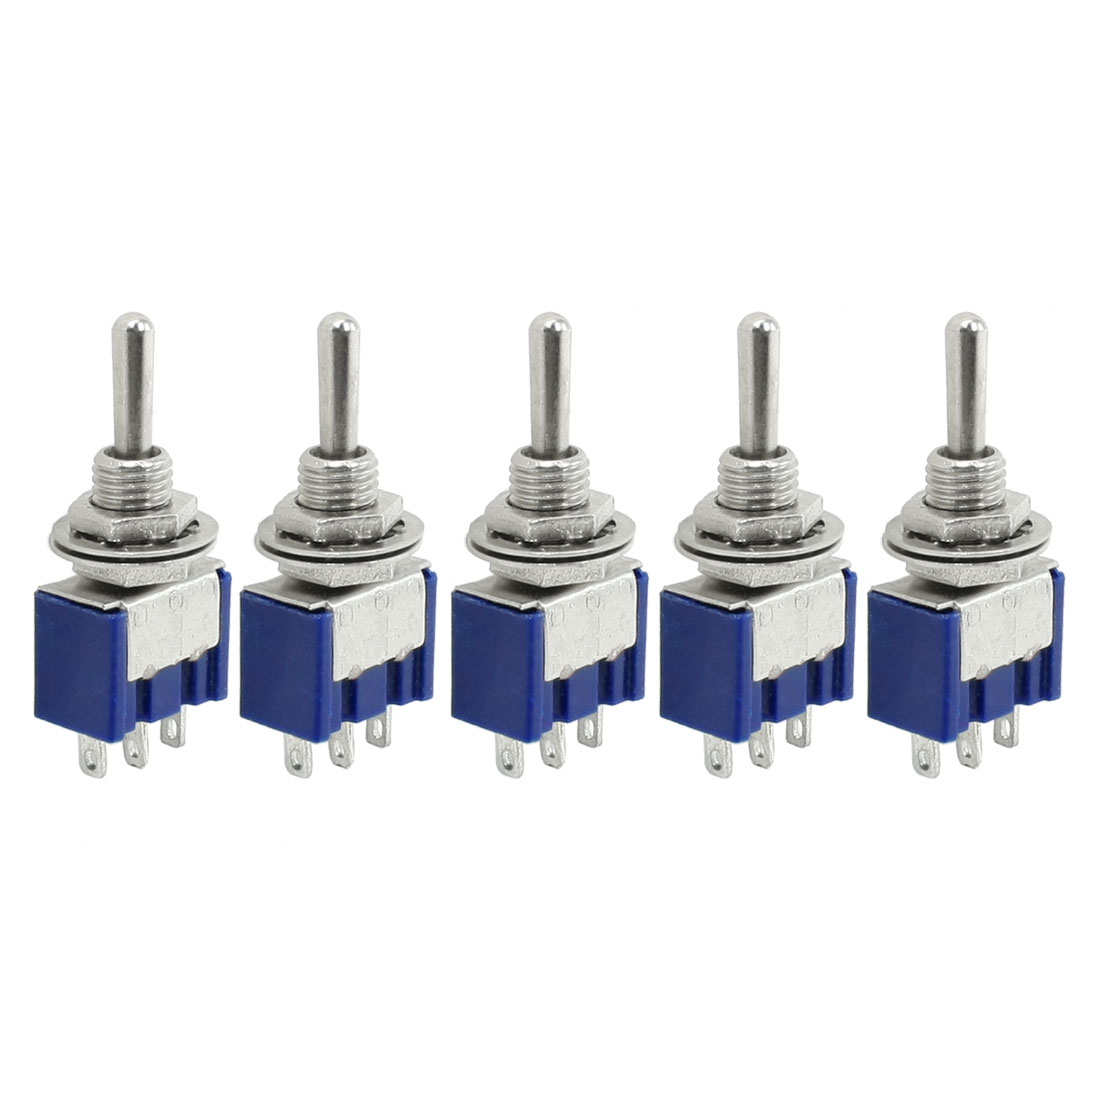 5 Pcs 6A 250AC 3 Positions ON/OFF/ON SPDT Miniature Toggle Switch